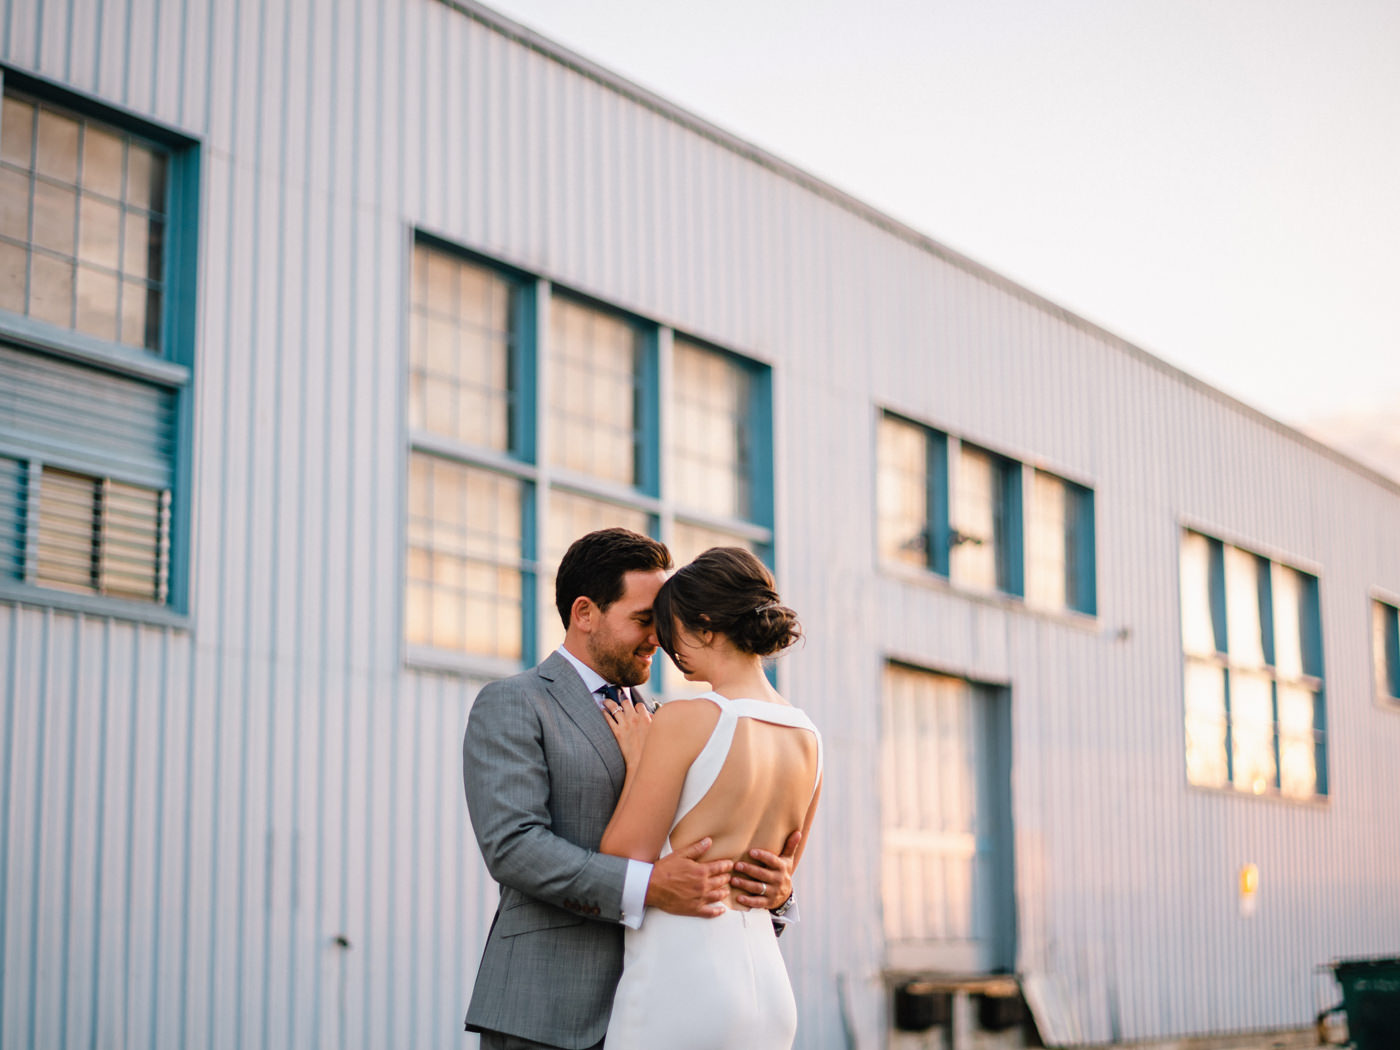 066-golden-hour-wedding-portraits-in-sodo-seattle-by-ryan-flynn.jpg